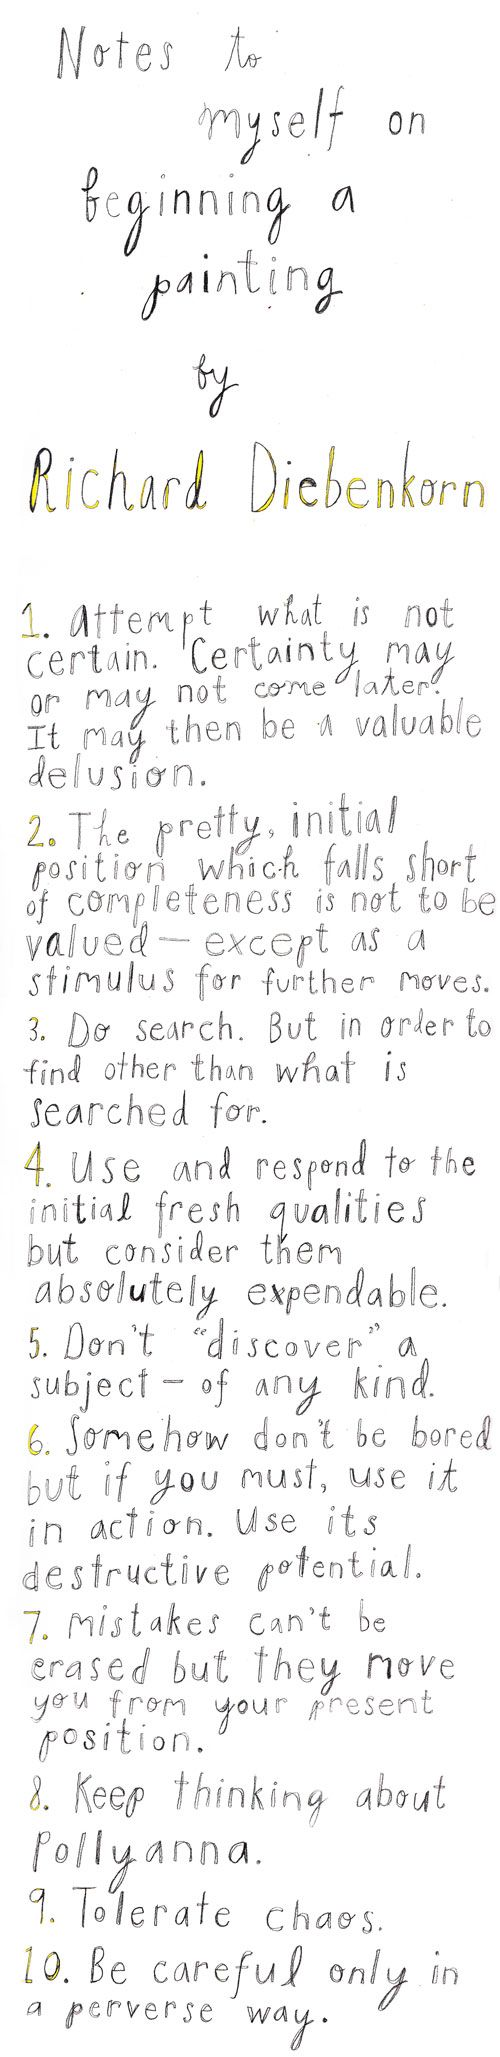 http://www.brainpickings.org/2013/08/23/richard-diebenkorn-10-rules-for-painting/